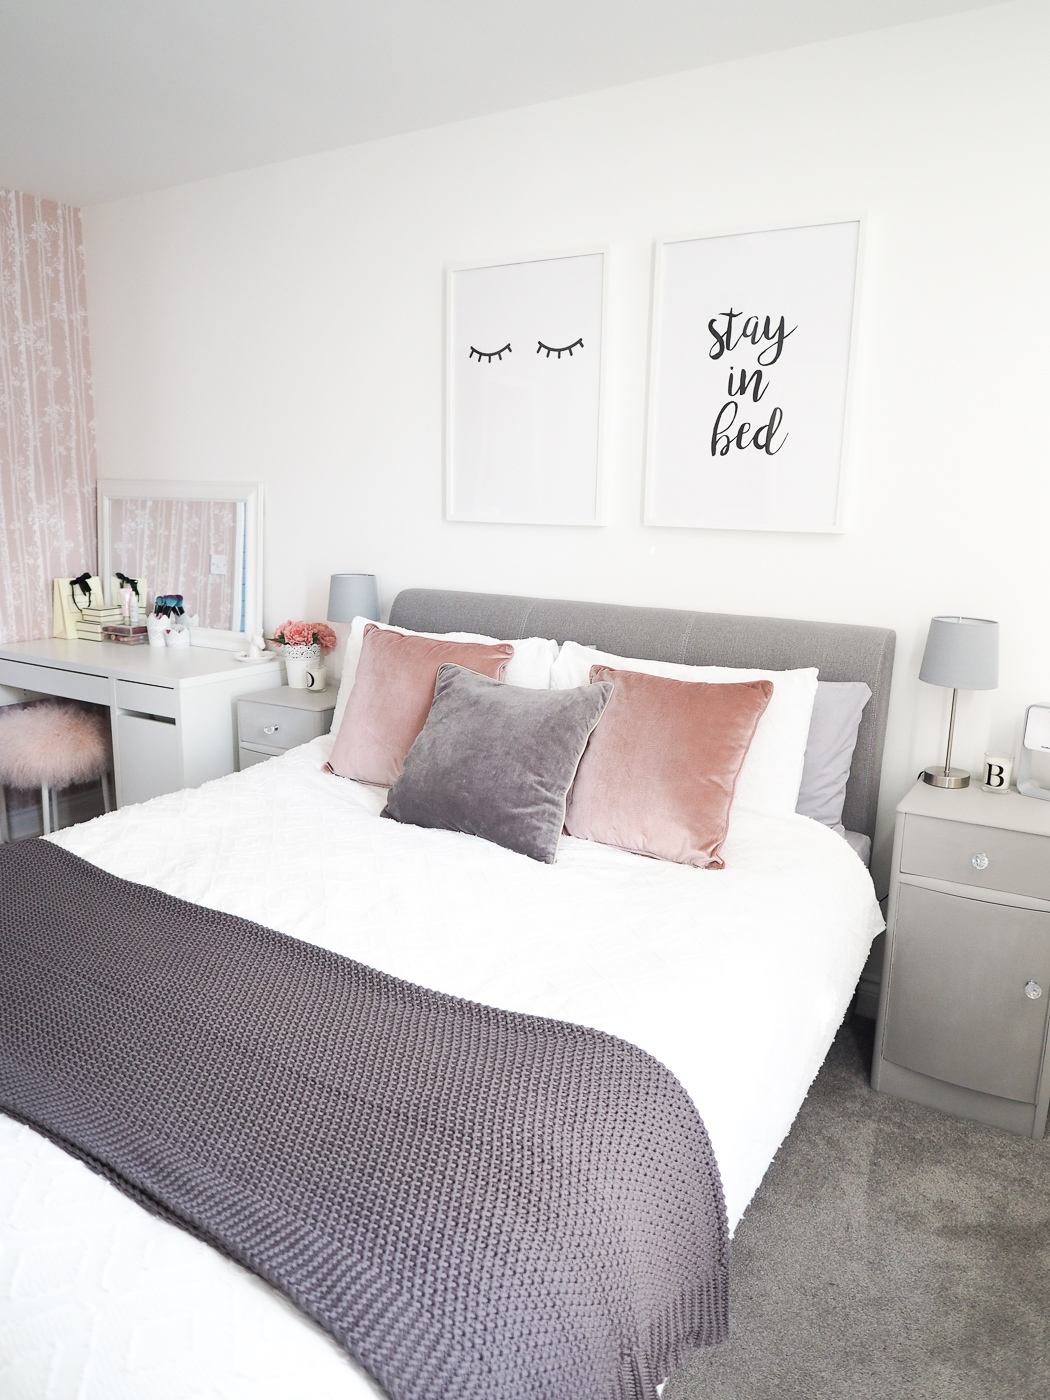 Bedroom Tour | Pink and Grey Bedroom Decor - Bang on Style